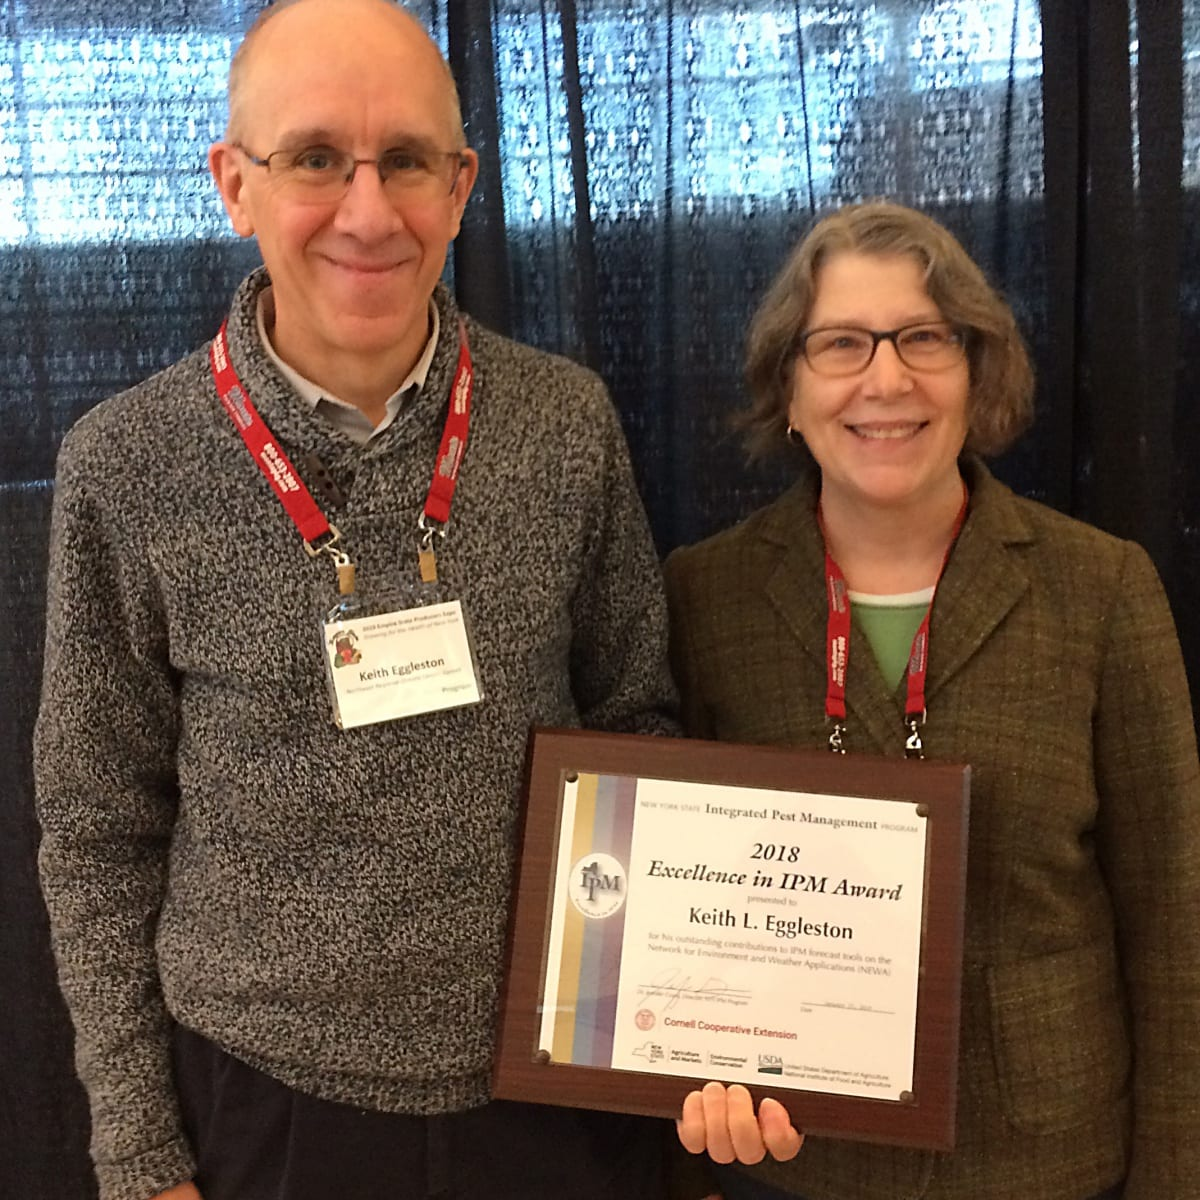 Photo shows Excellence in IPM Award winner Keith L. Eggleston and NYSIPM Fruit IPM Coordinator, Dr. Juliet Carrol